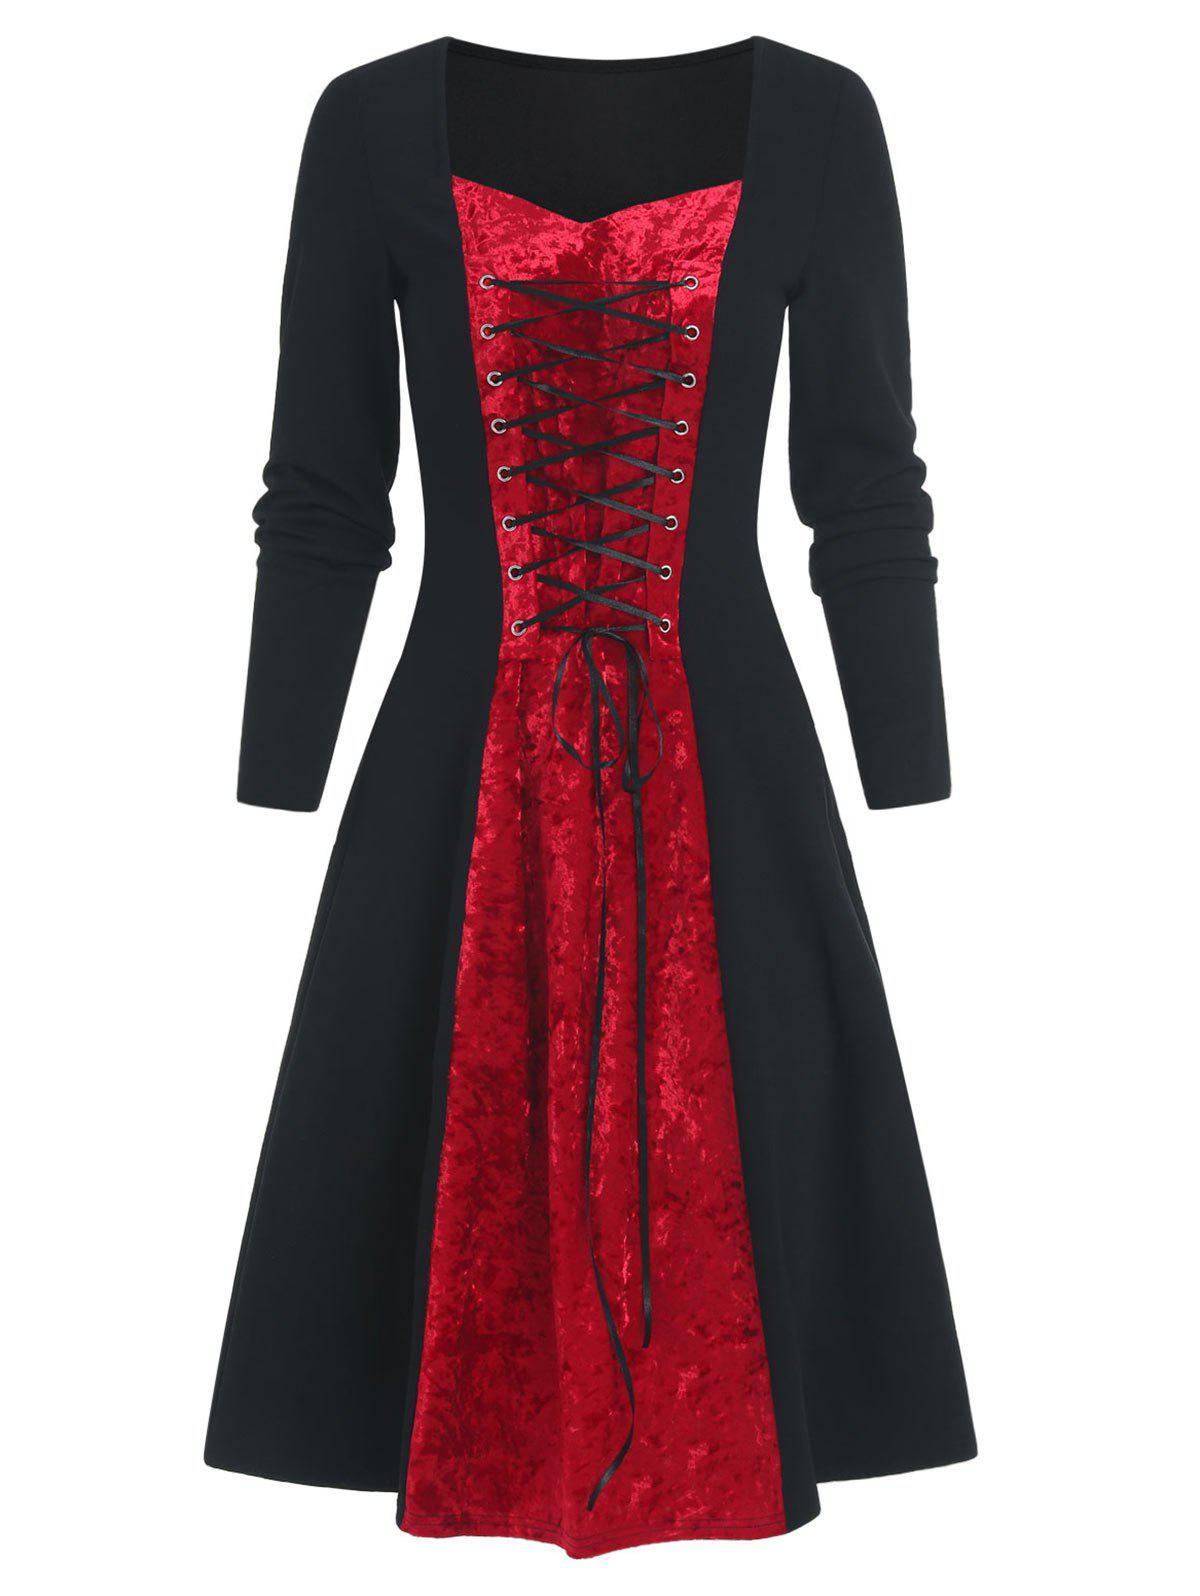 Hot Two Tone Velvet Panel Lace Up Long Sleeve Dress